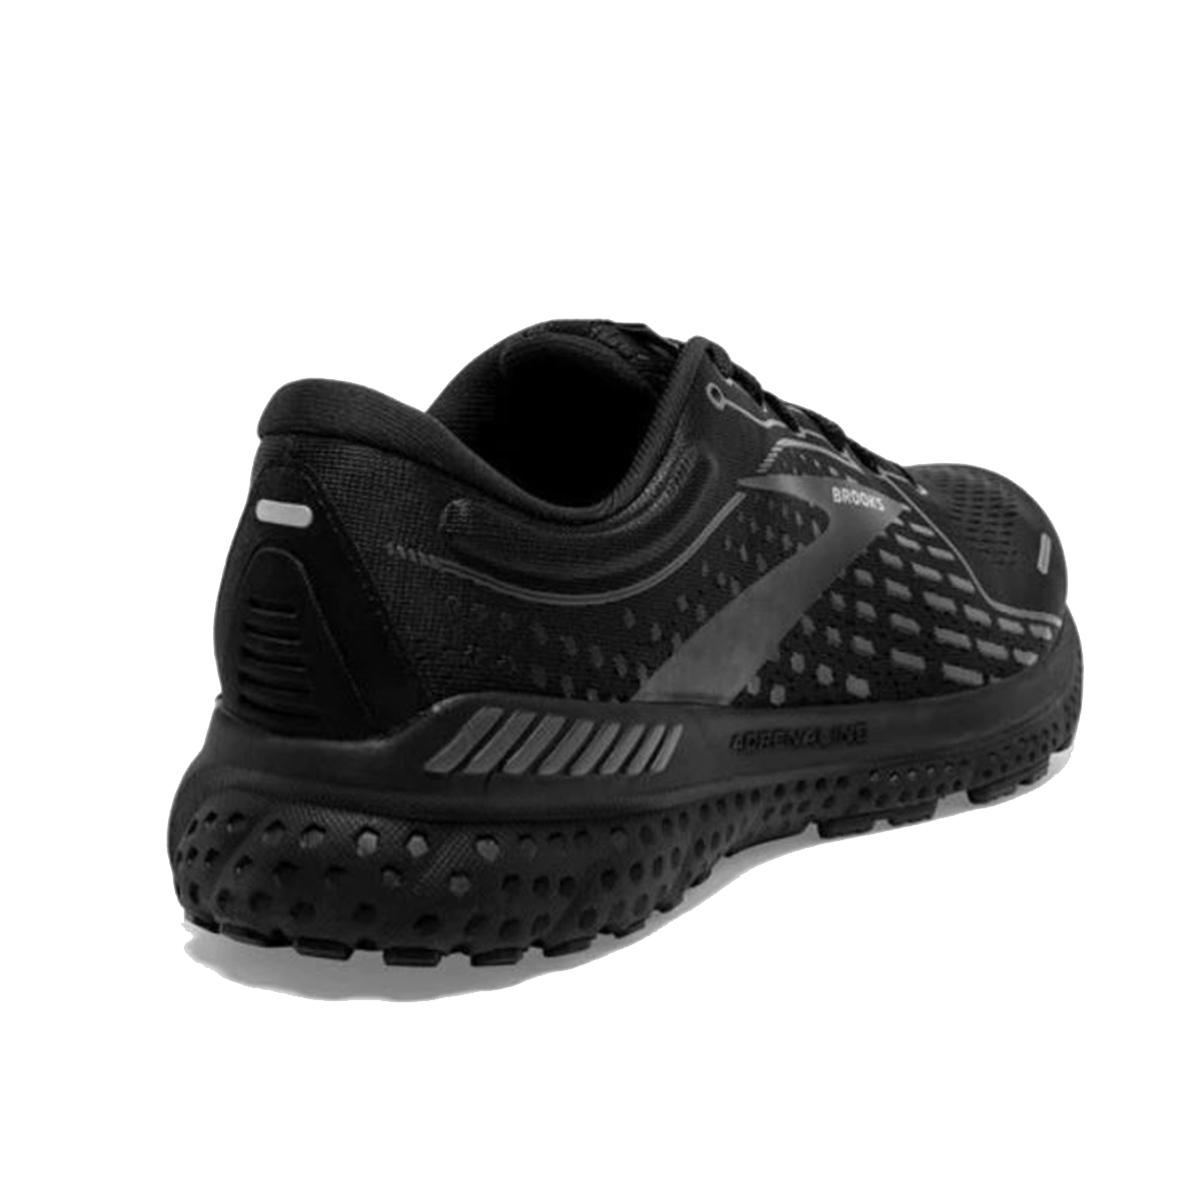 Men's Brooks Adrenaline GTS 21 Running Shoe - Color: Black/Black/Ebony - Size: 7 - Width: Regular, Black/Black/Ebony, large, image 4